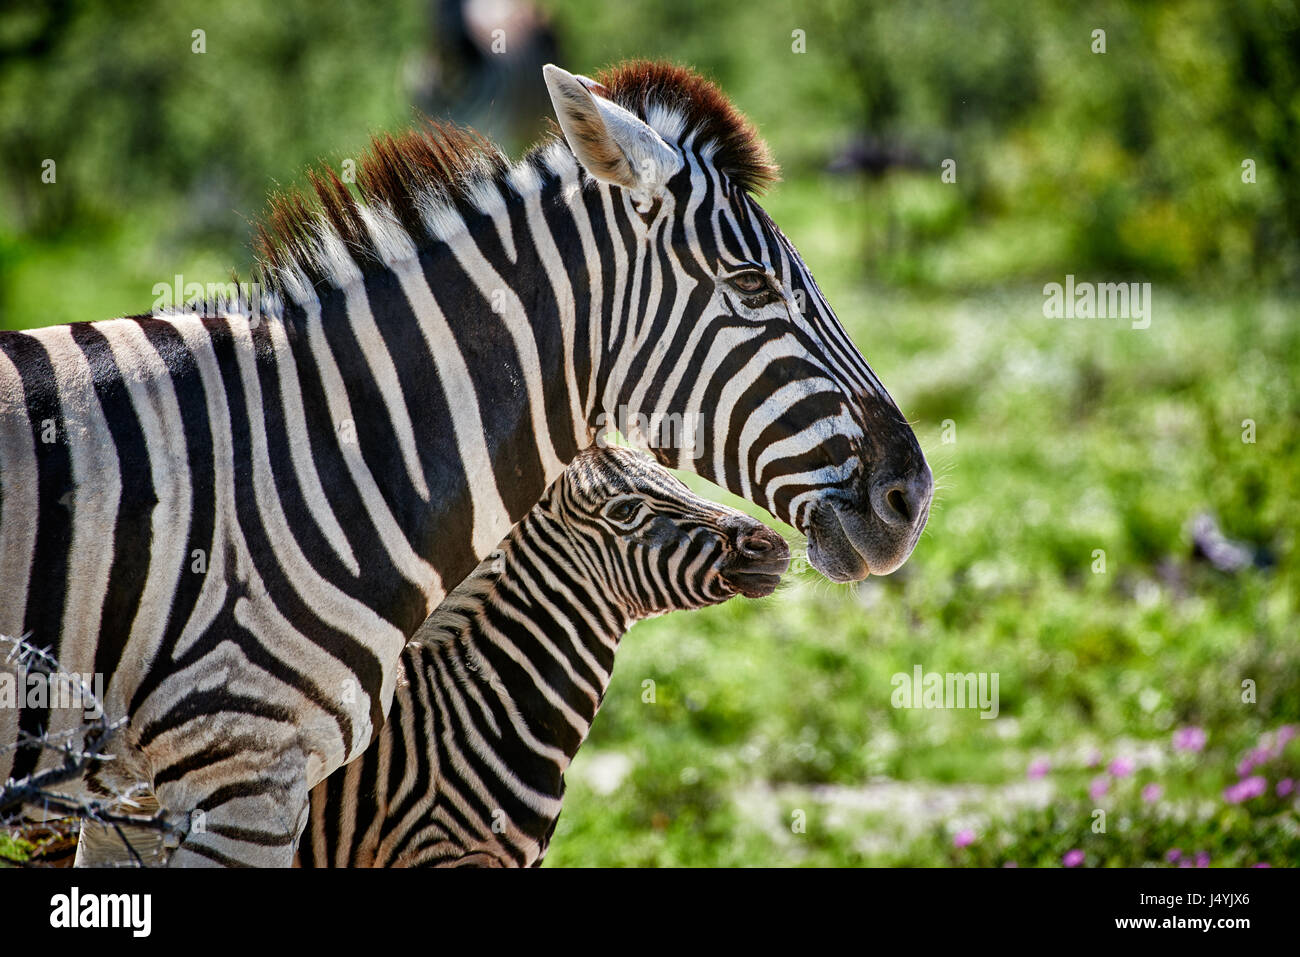 Burchell's zebra, mother with foal, Etosha National Park, Namibia - Stock Image